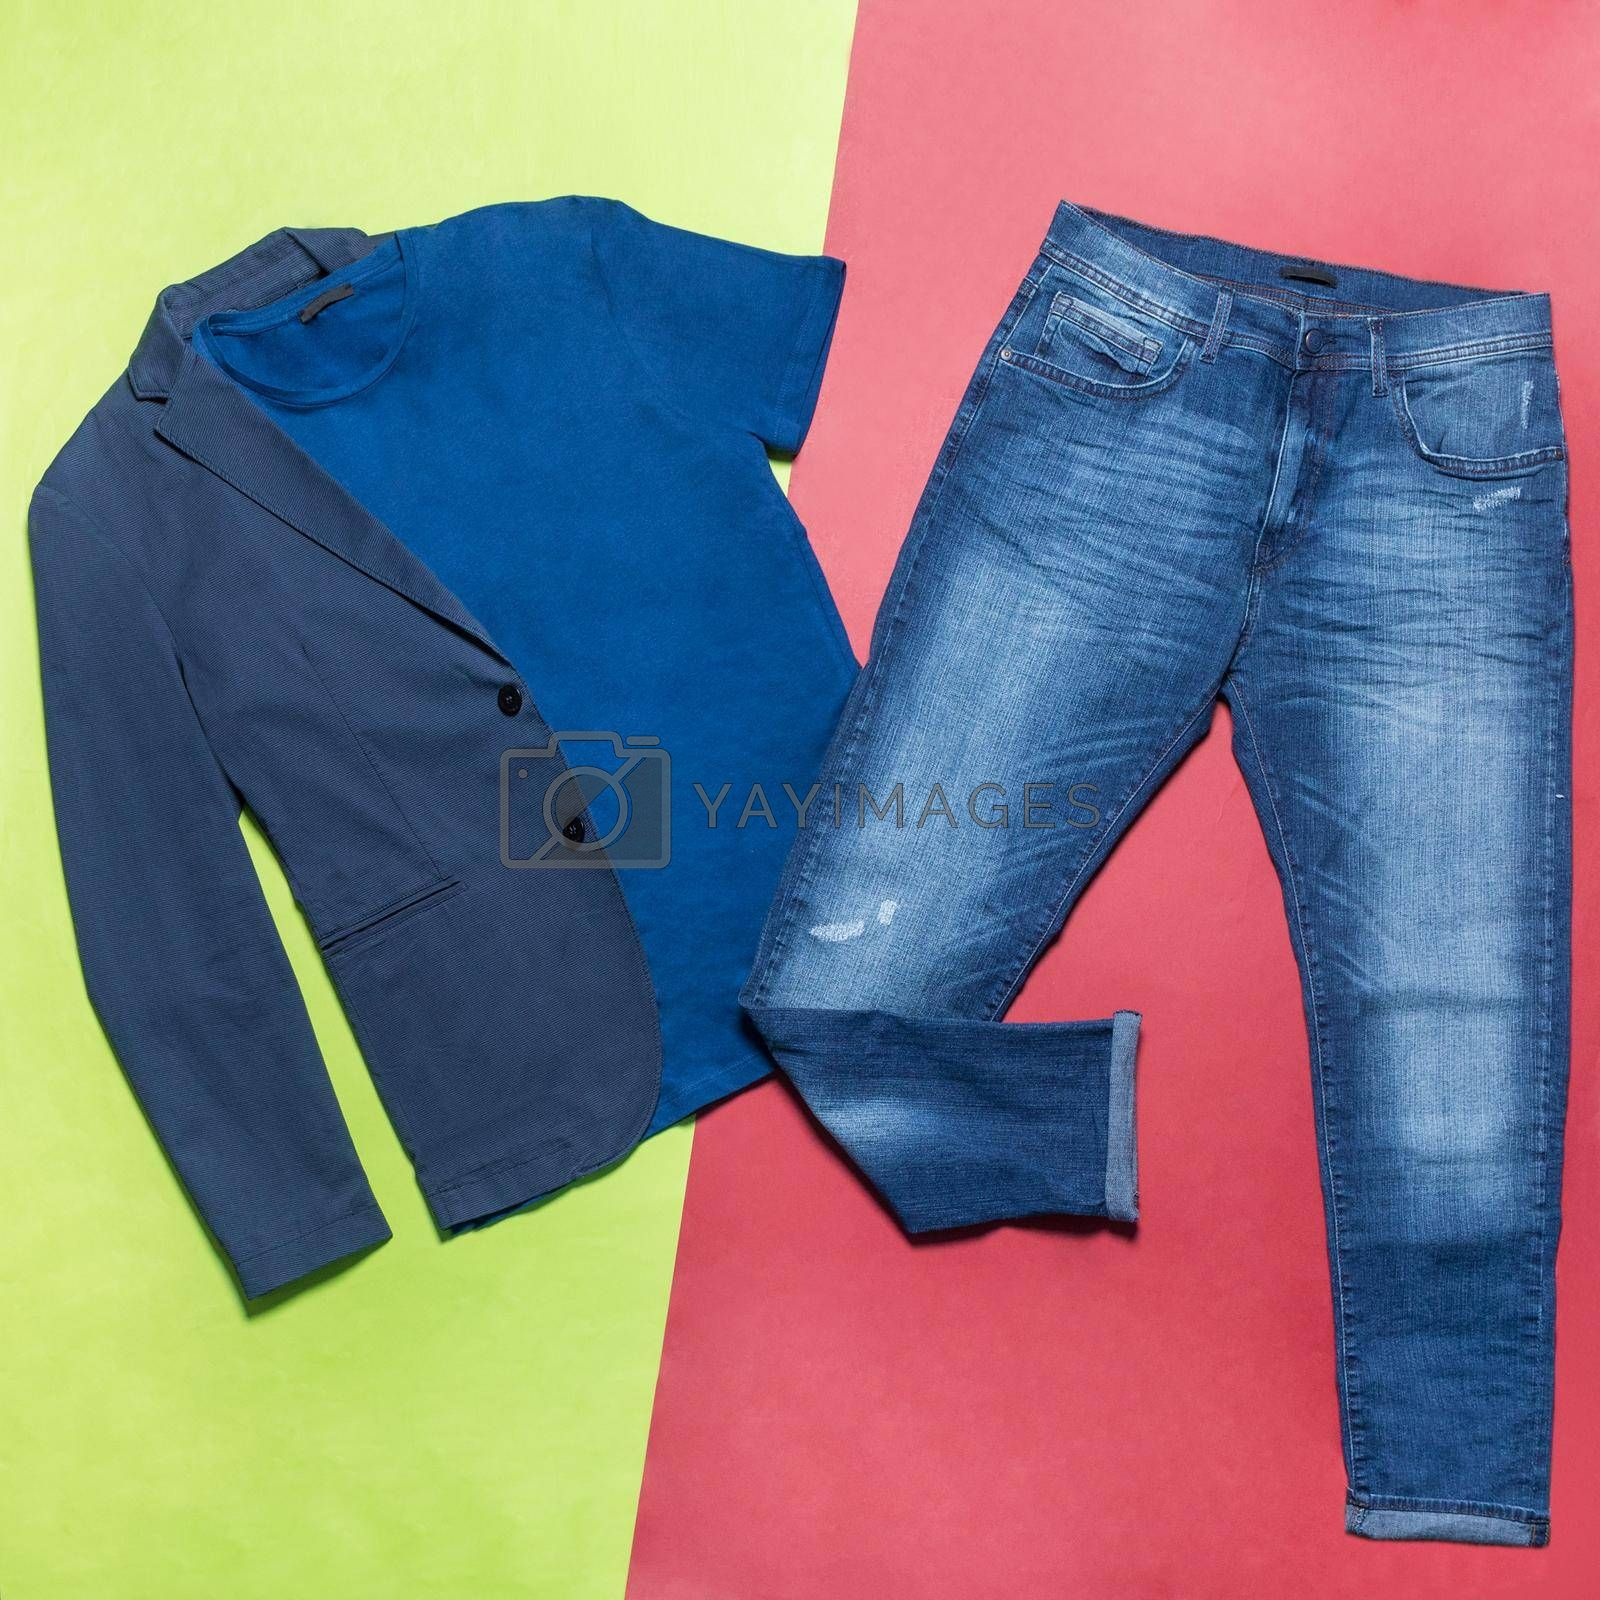 Man jacket t-shirt jeans pants top view